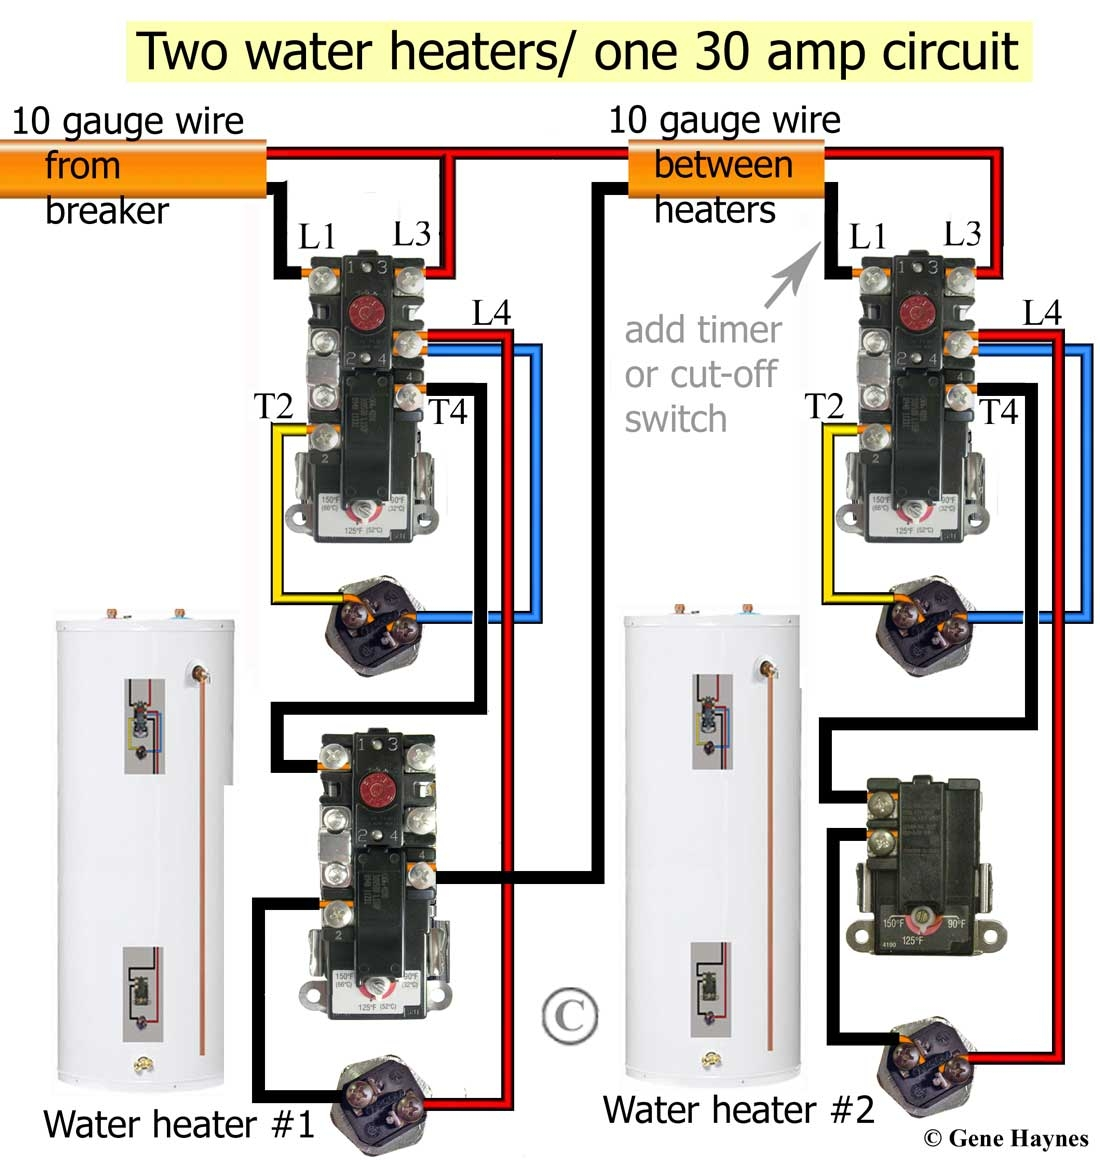 hot water heater wiring diagrams hot water heater wiring diagrams